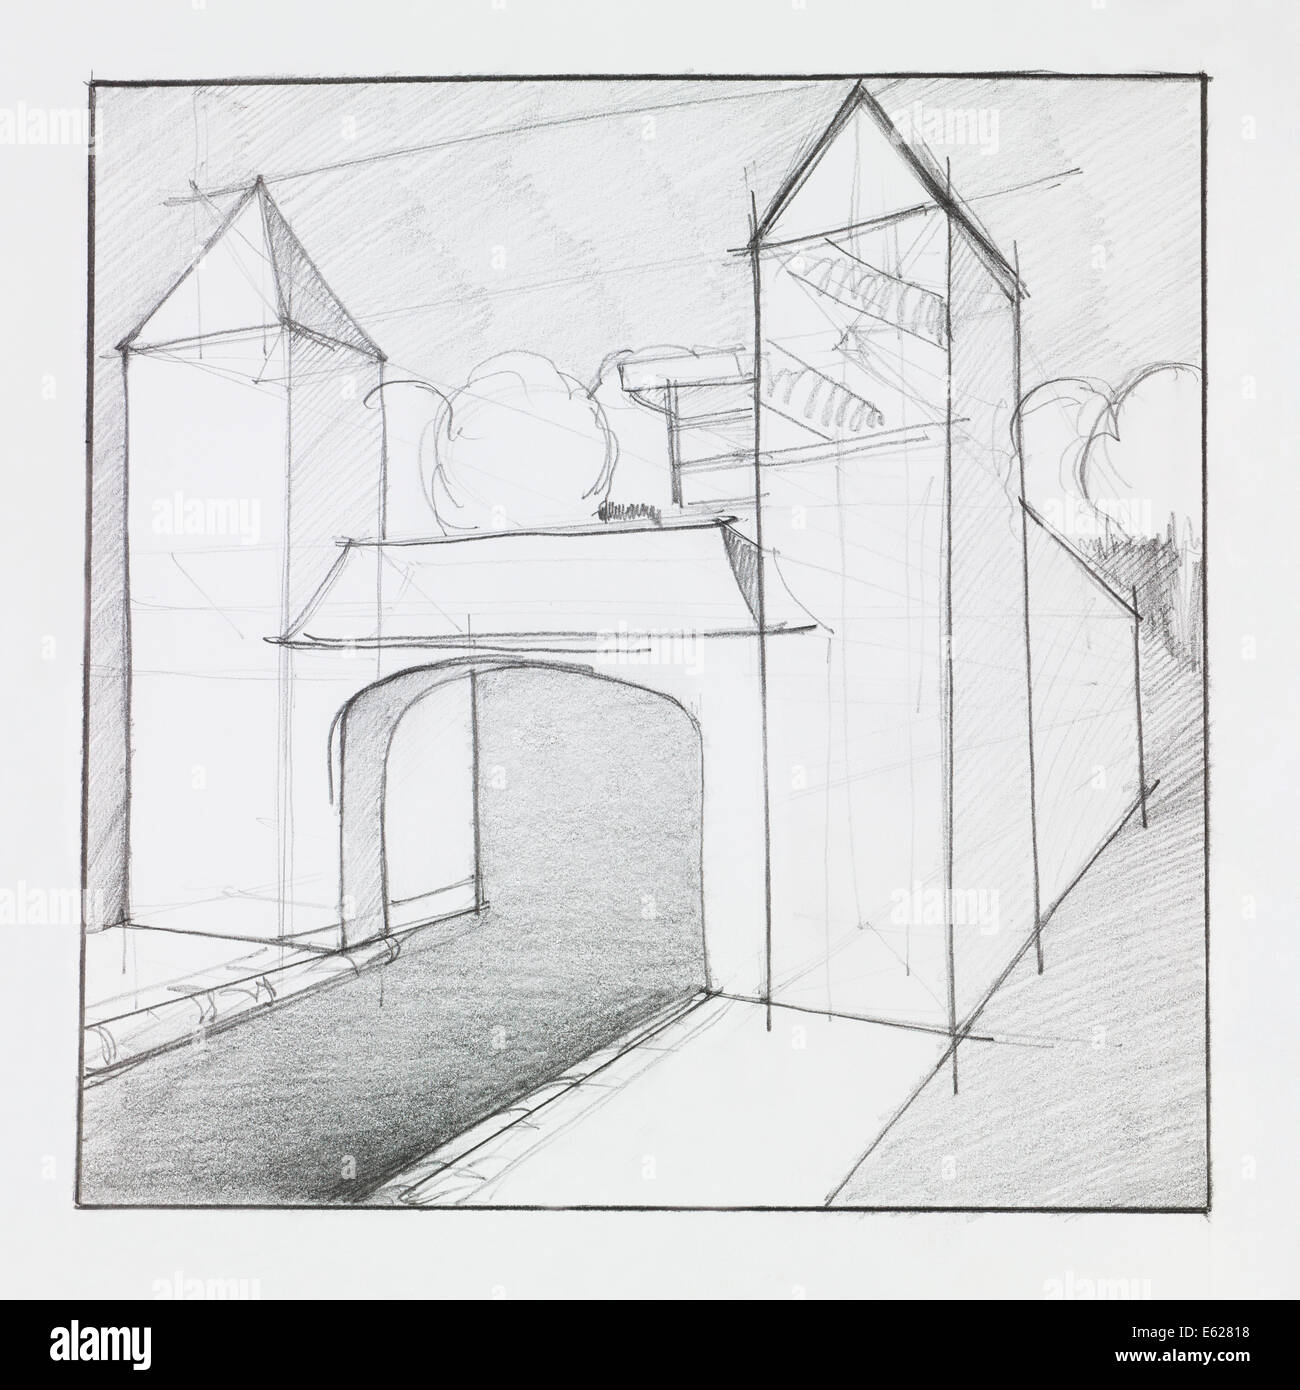 Architectural perspective of arched gate with towers made out of geometrical forms drawn by hand